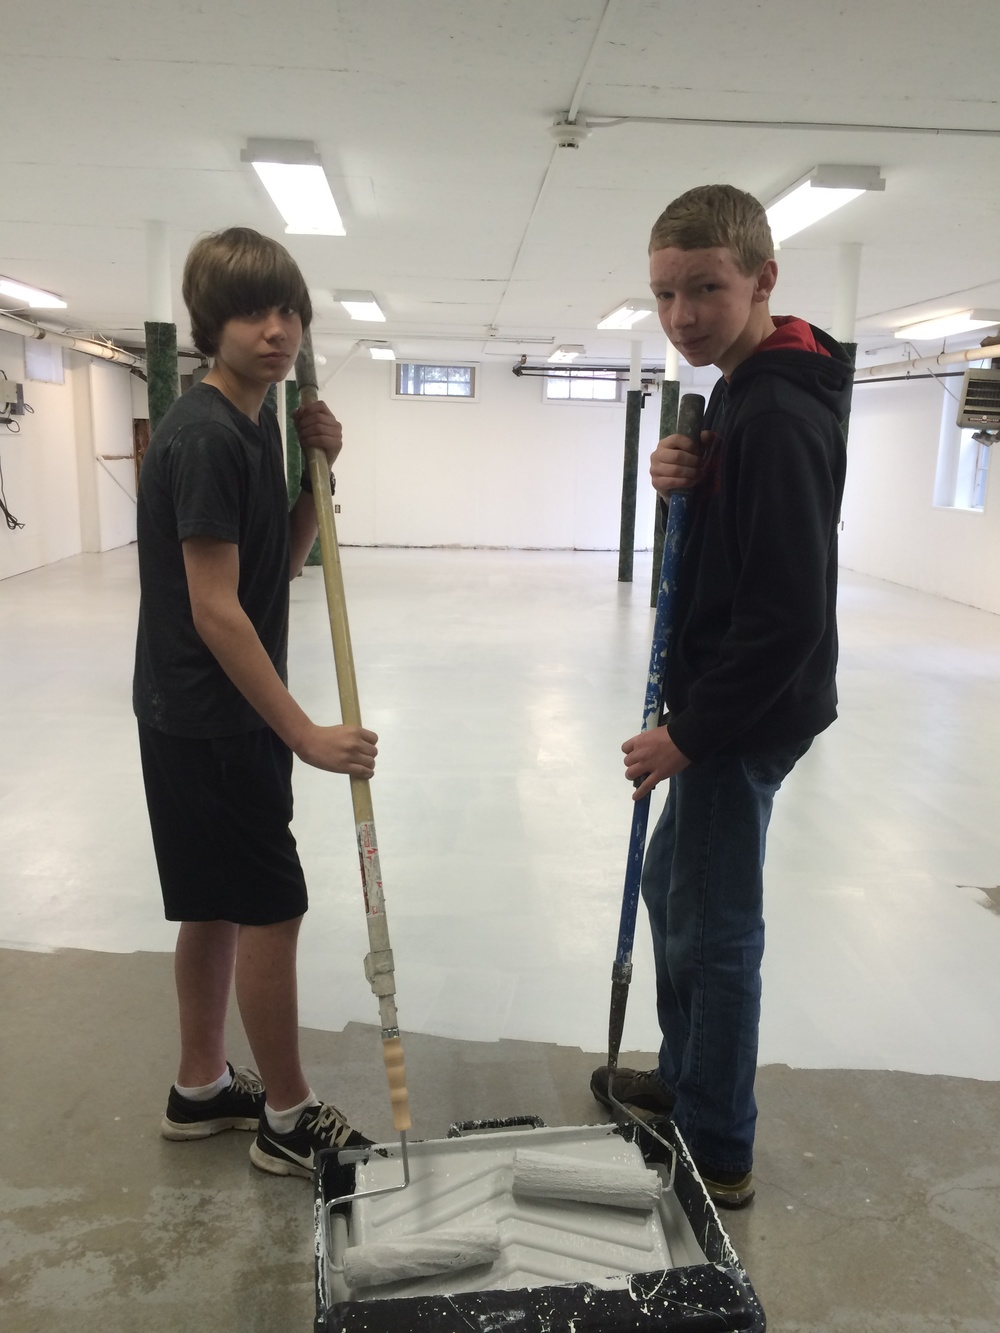 Floor team on a roll:   Dan Mitchell and Liam Paulhus prove how well team work can succeed.